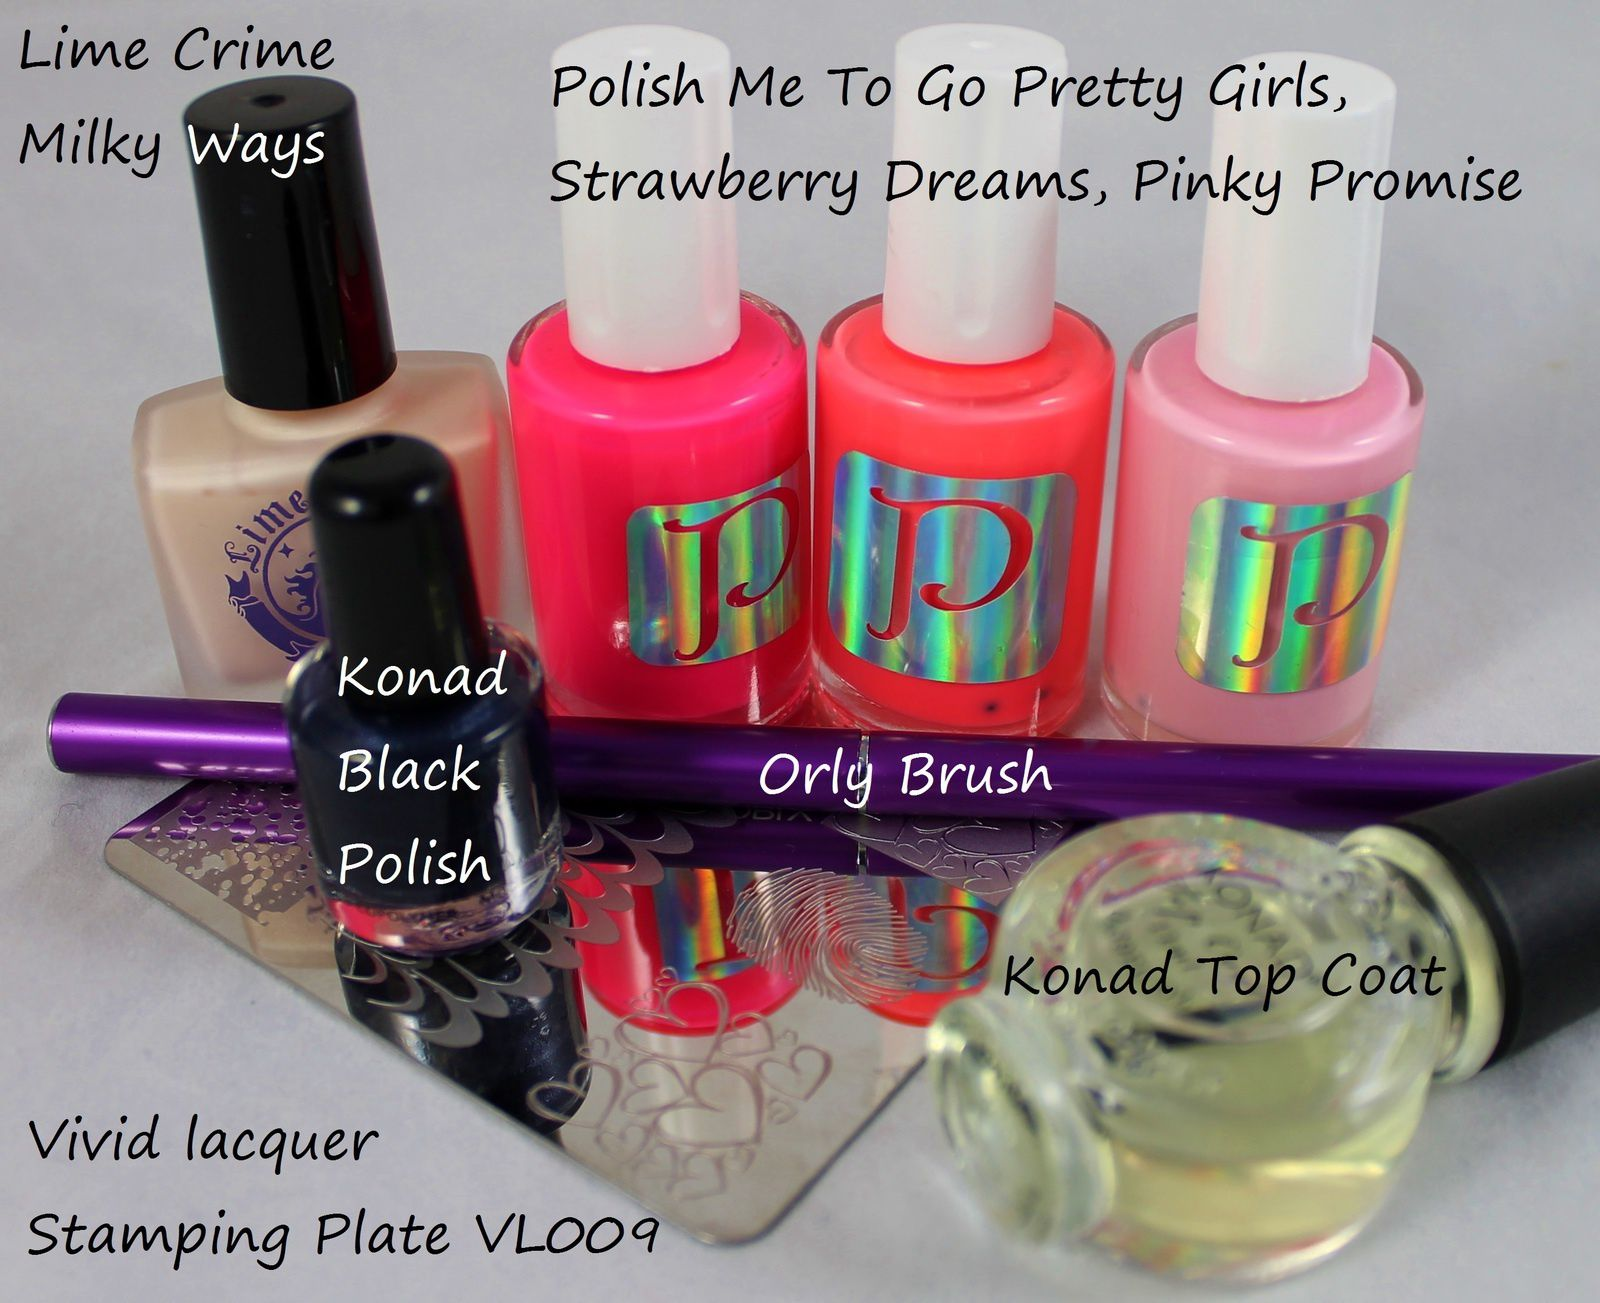 Lime Crime Milky Ways / Vivid Lacquer Stamping Plate VL009 & Konad black polish / Polish Me To Go Pretty Girls, Strawberry Dreams, Pinky Promise & Orly Brush / Konad Top Coat